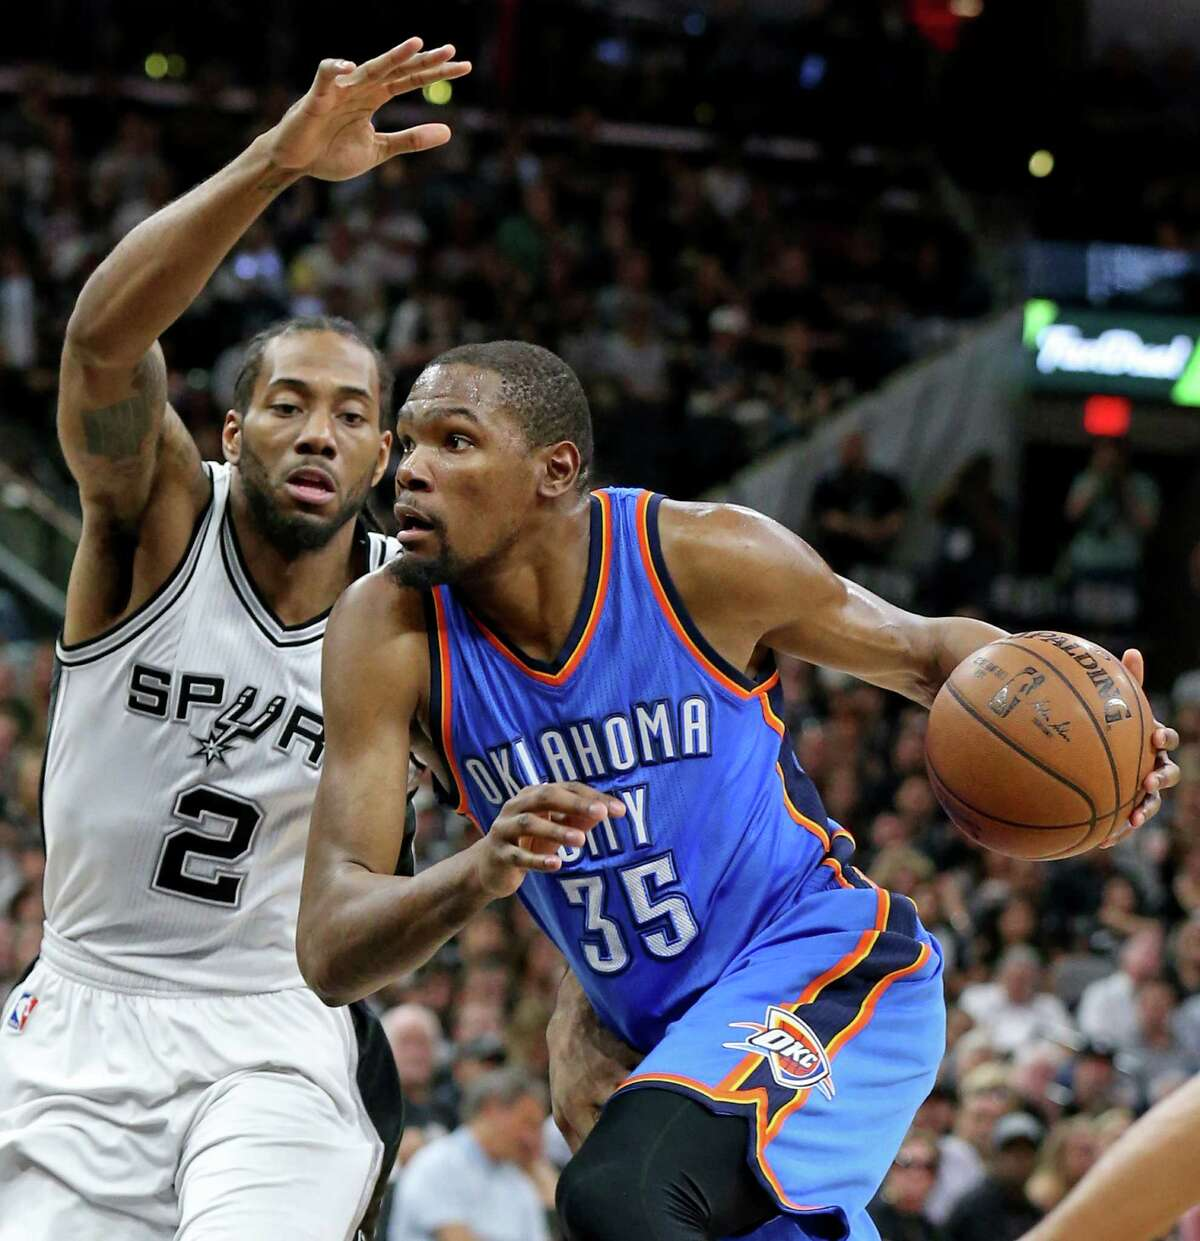 San Antonio Spurs' Kawhi Leonard defends Oklahoma City Thunder's Kevin Durant during first half action of Game 5 in the Western Conference semifinals Tuesday May 10, 2016 at the AT&T Center.